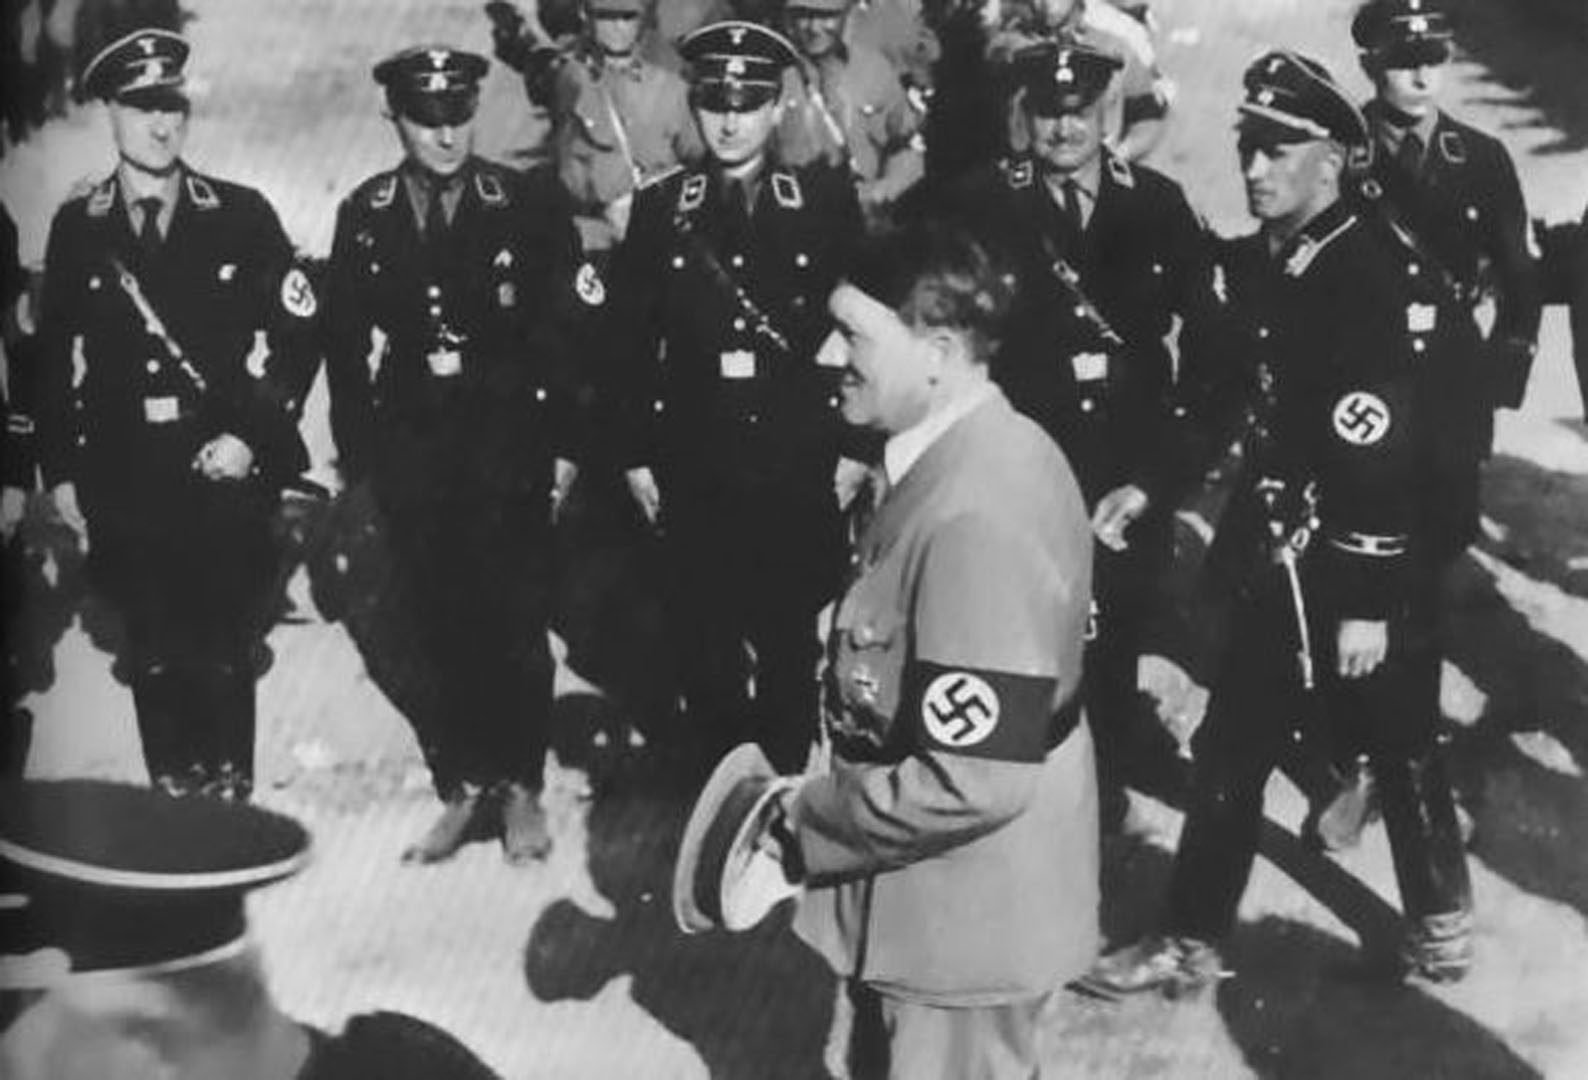 Hitler Inspecting Group Of Allgemeine Ss Soldiers   Historical Nazi 1588x1080